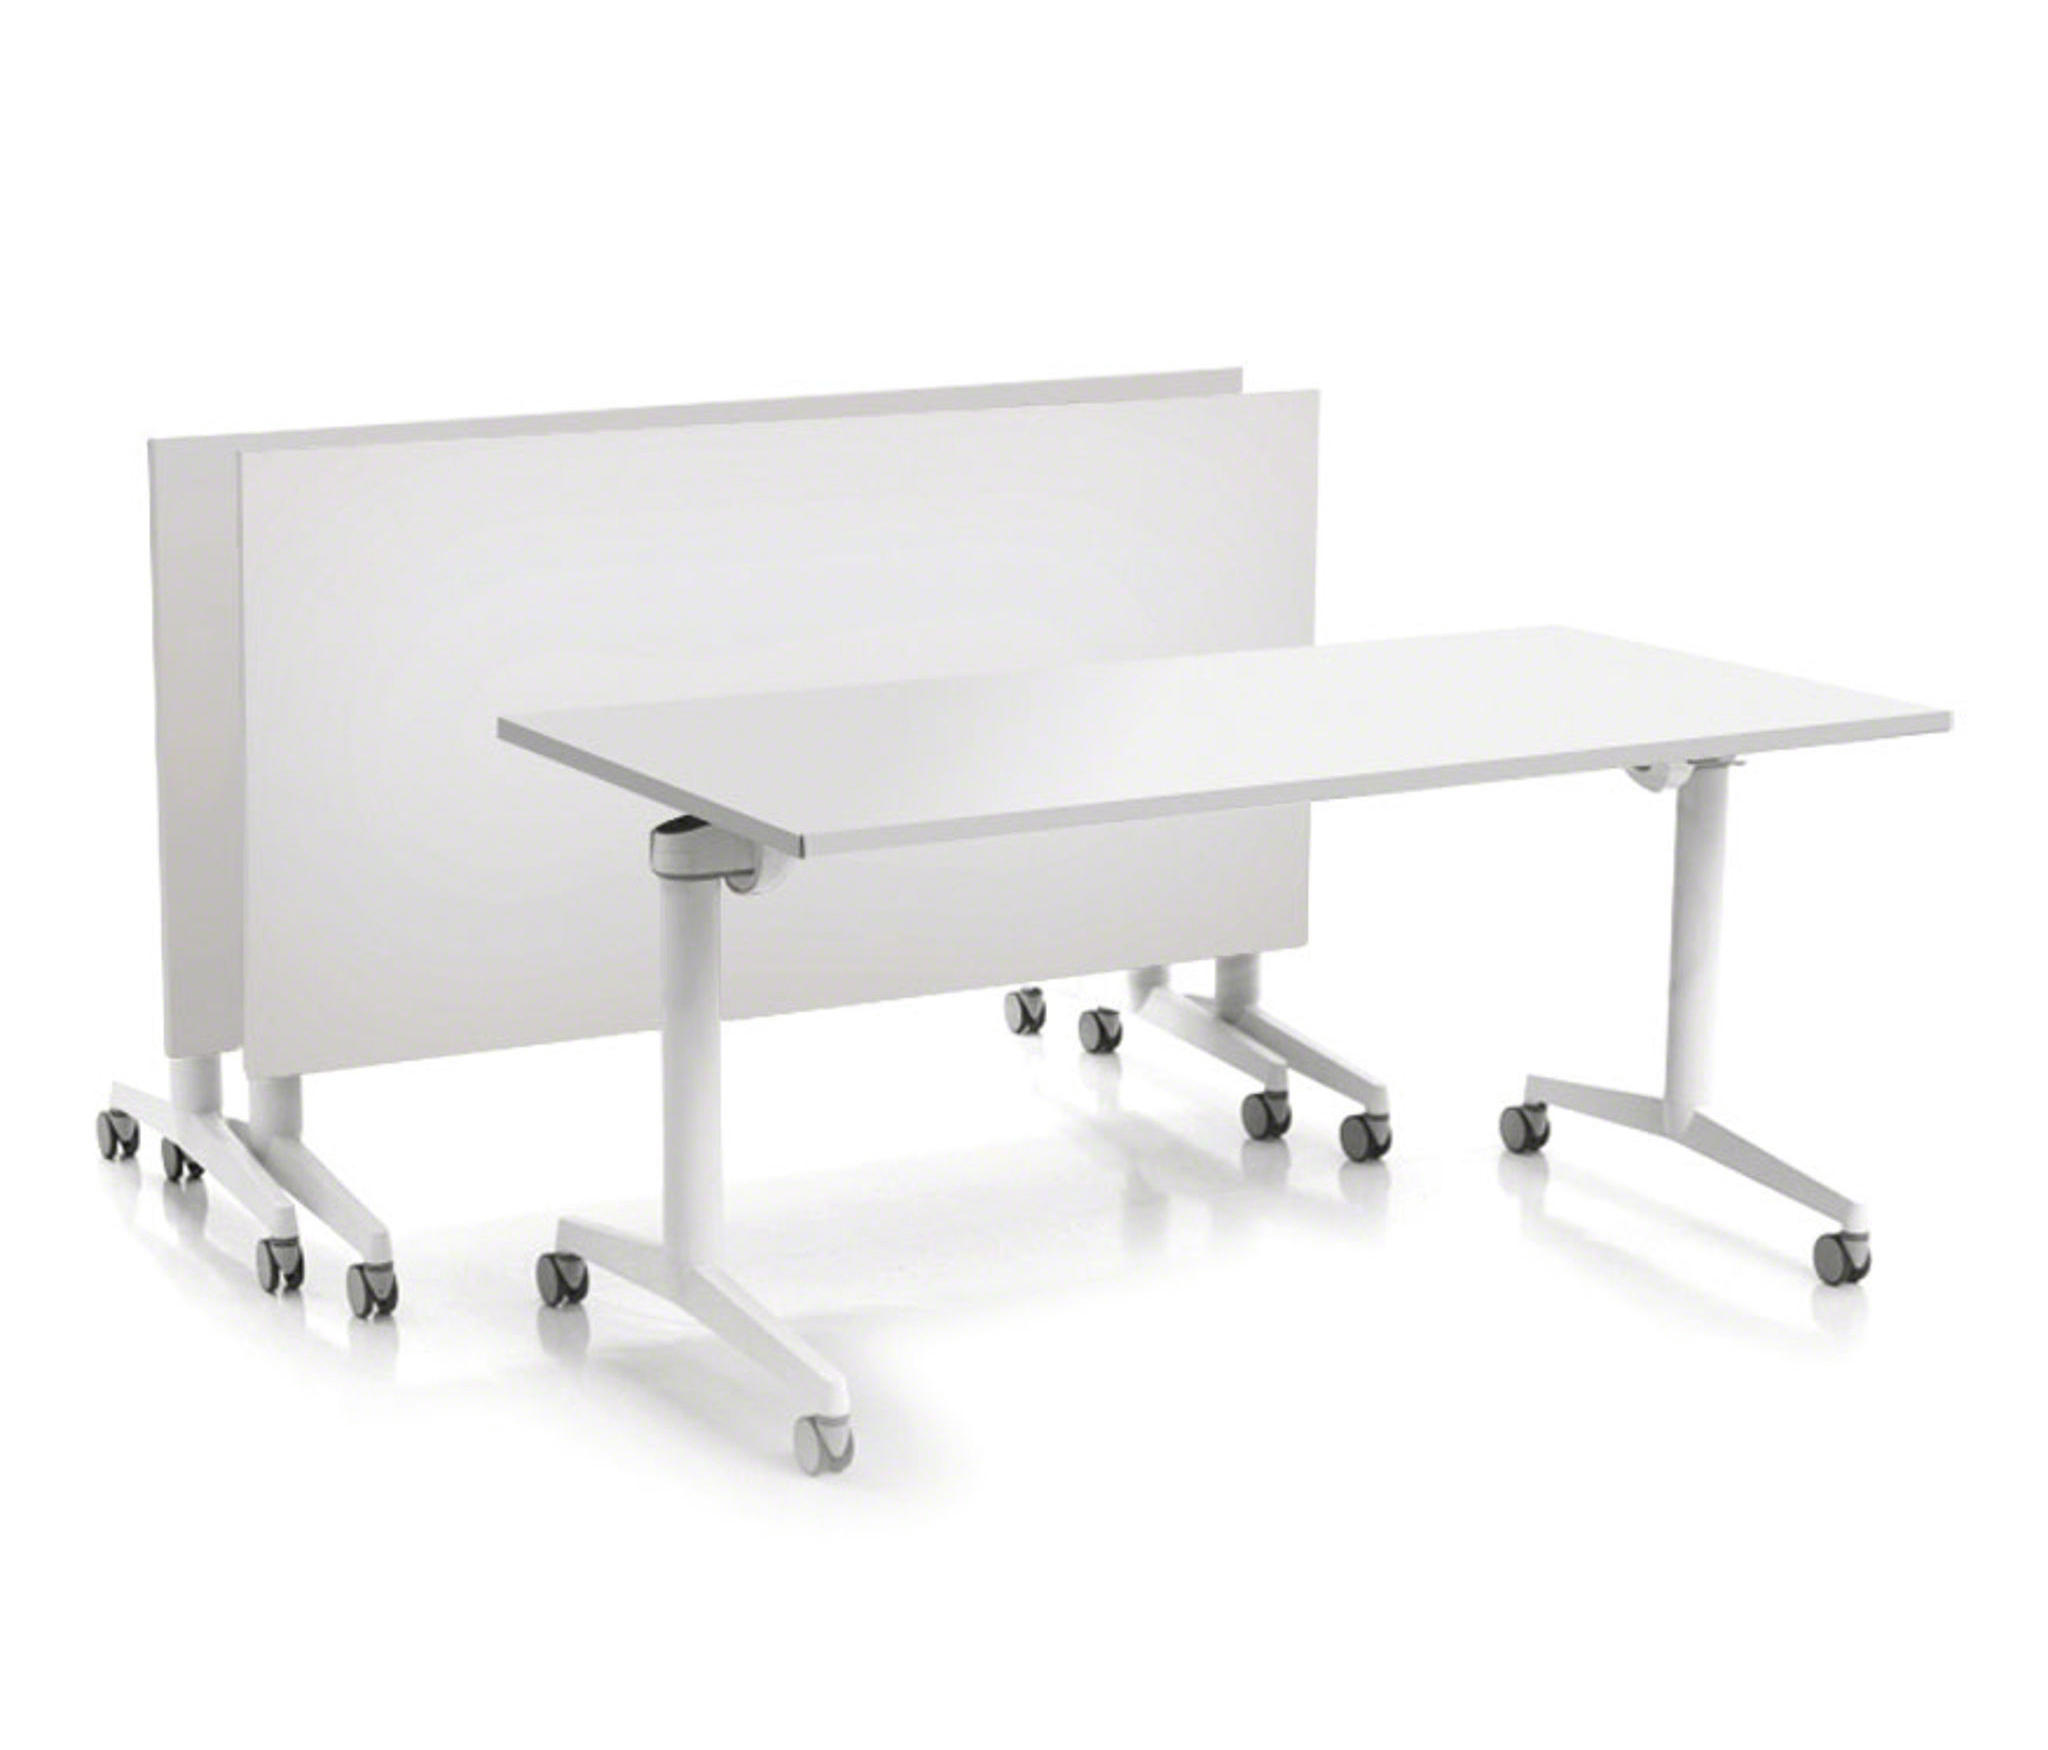 Fliptop Twin Contract Tables From Steelcase Architonic